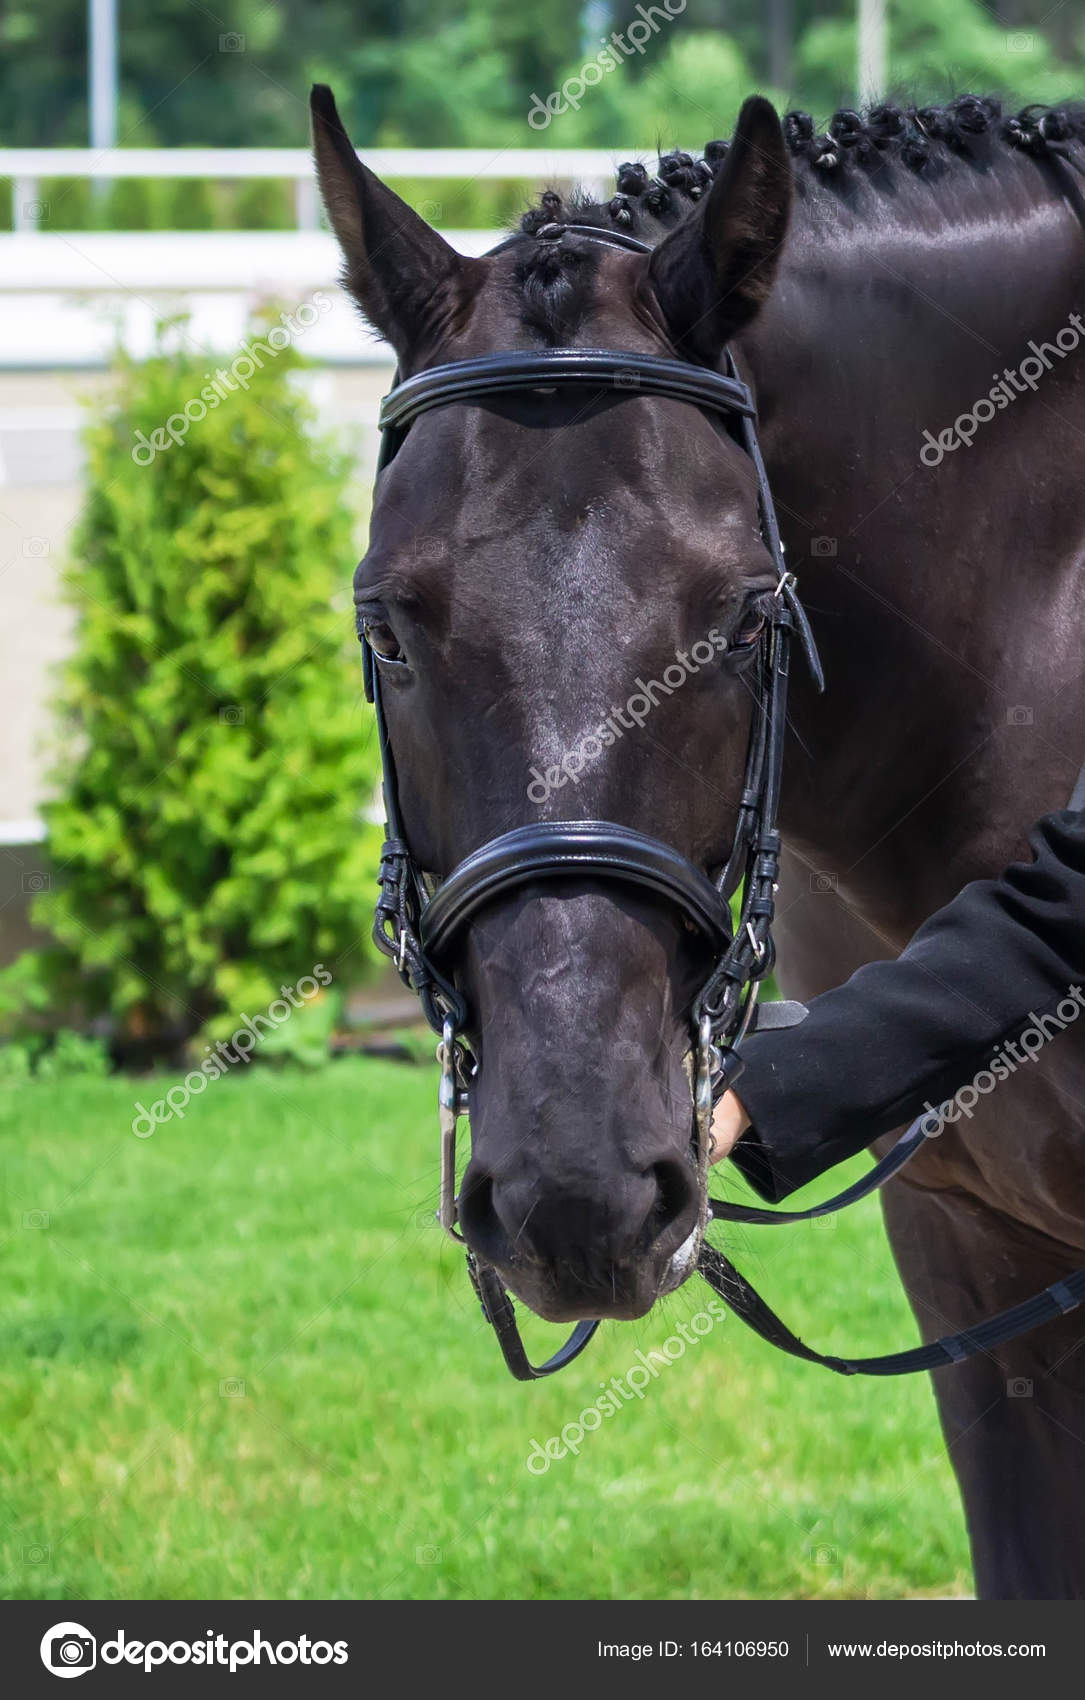 Black Horse Portrait During Dressage Competition Stock Photo C Martanovak 164106950